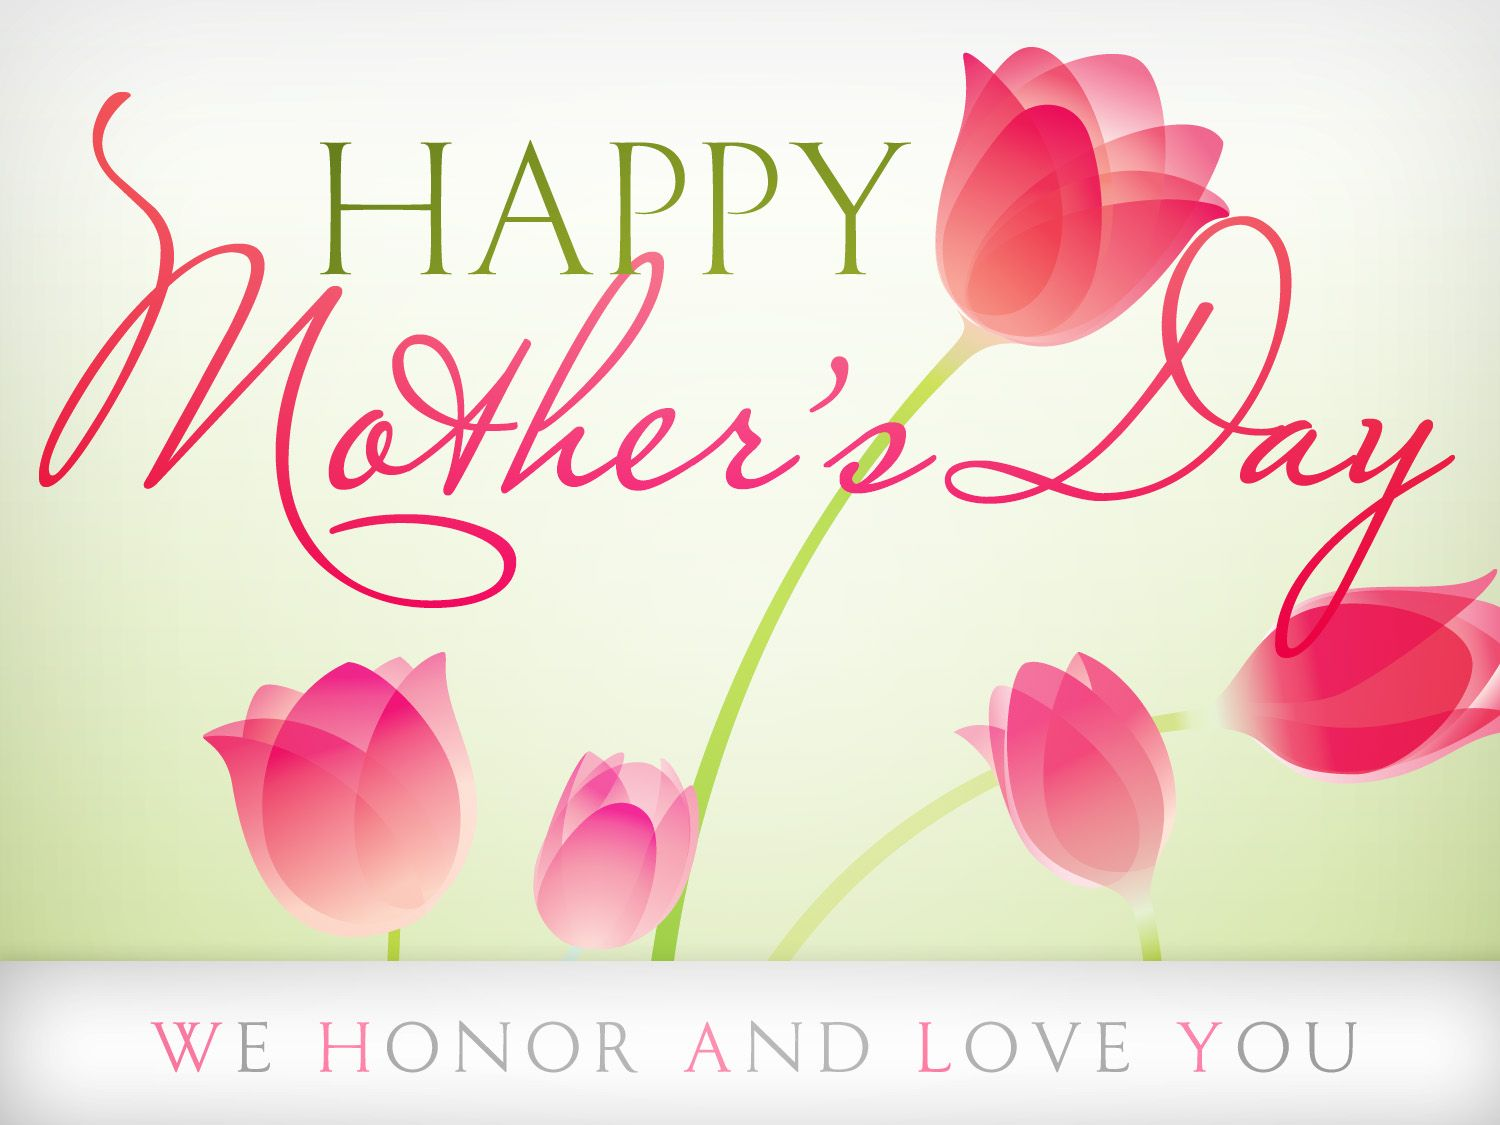 Pin By Jerry Gonzalez On Me Happy Mothers Day Wallpaper Mother Day Wishes Happy Mothers Day Wishes